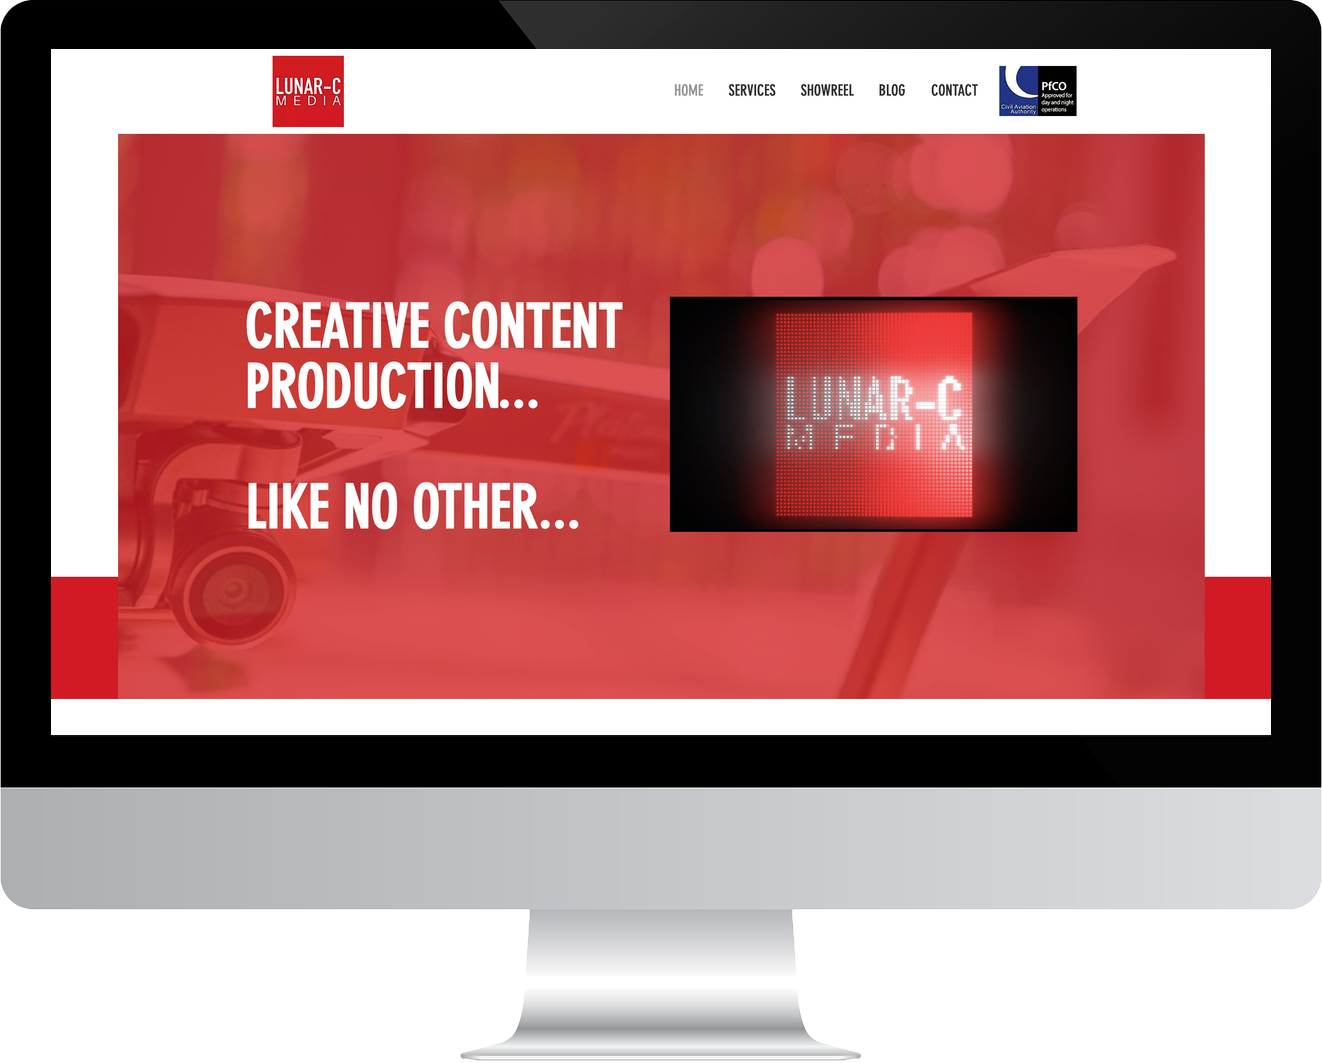 website design header image 4